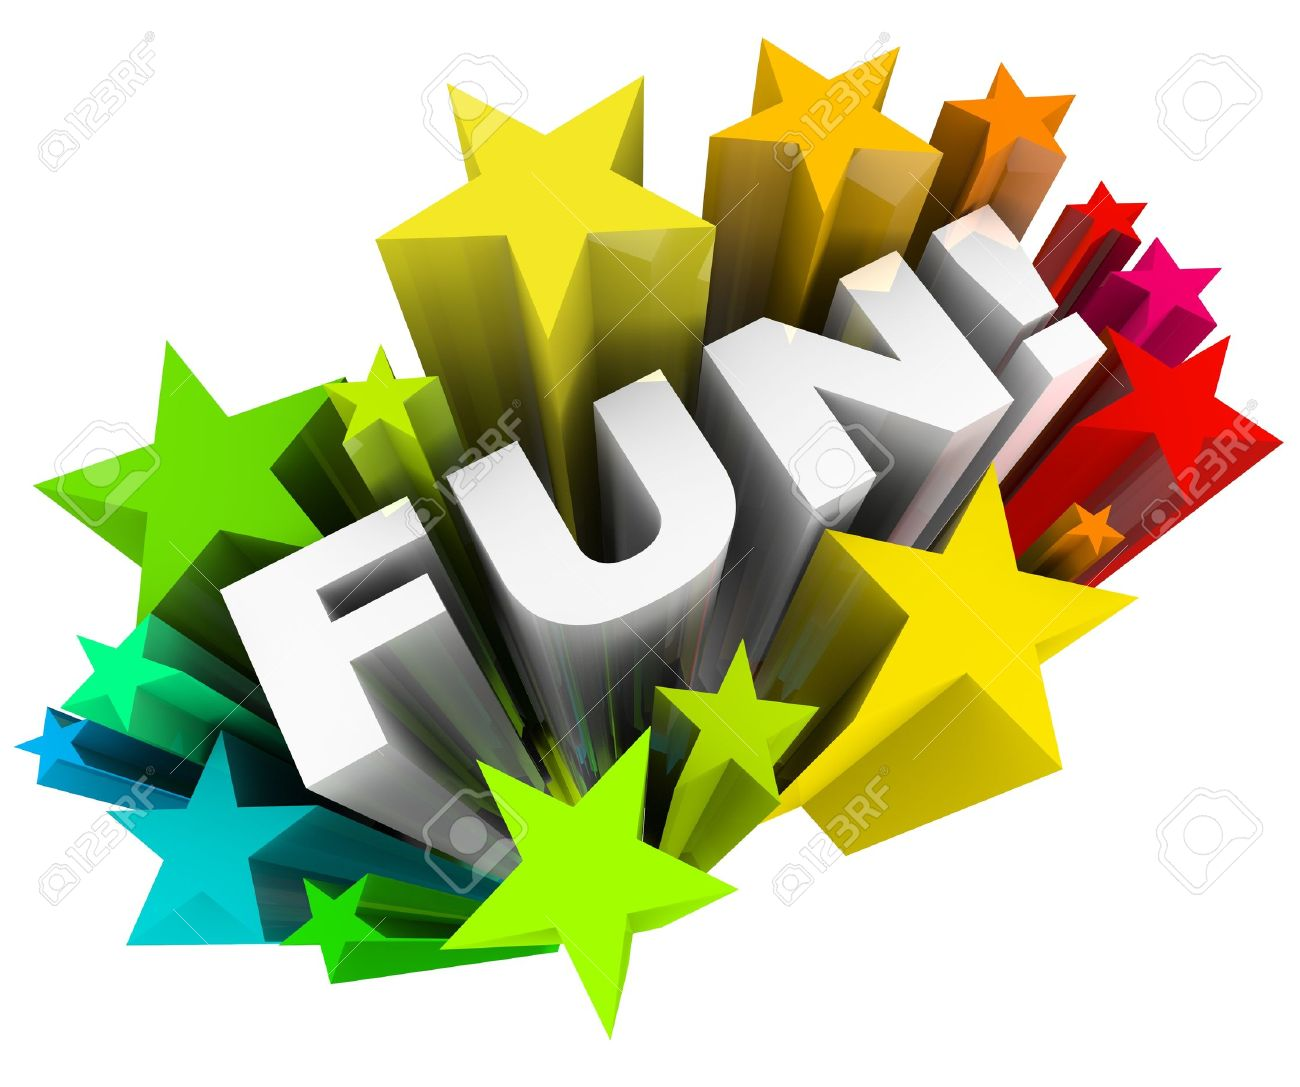 the word fun in a burst of colorful stars representing an amusing